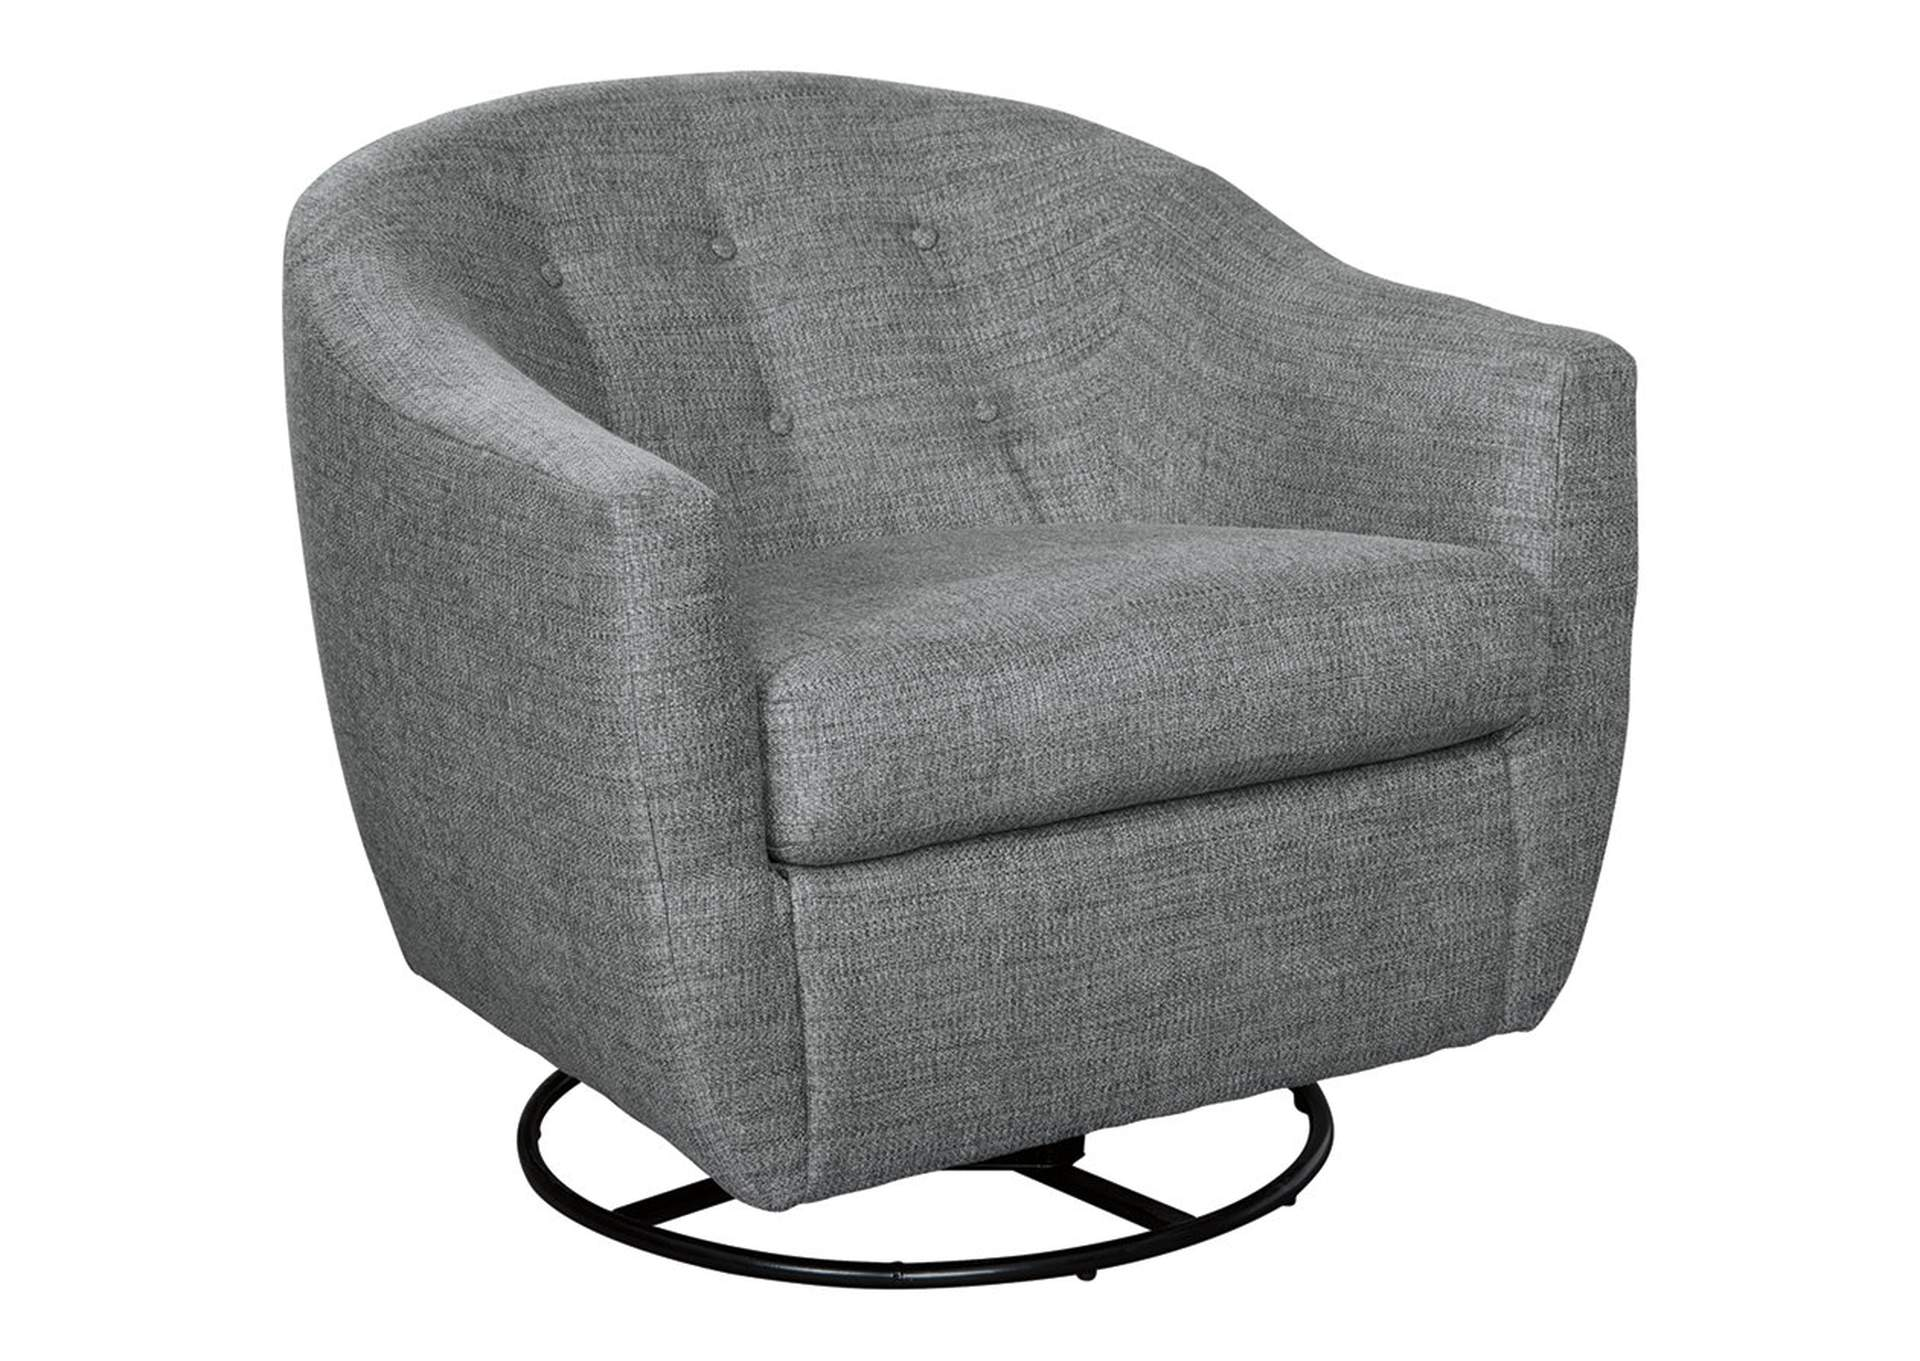 Mandon River Accent Chair,Benchcraft